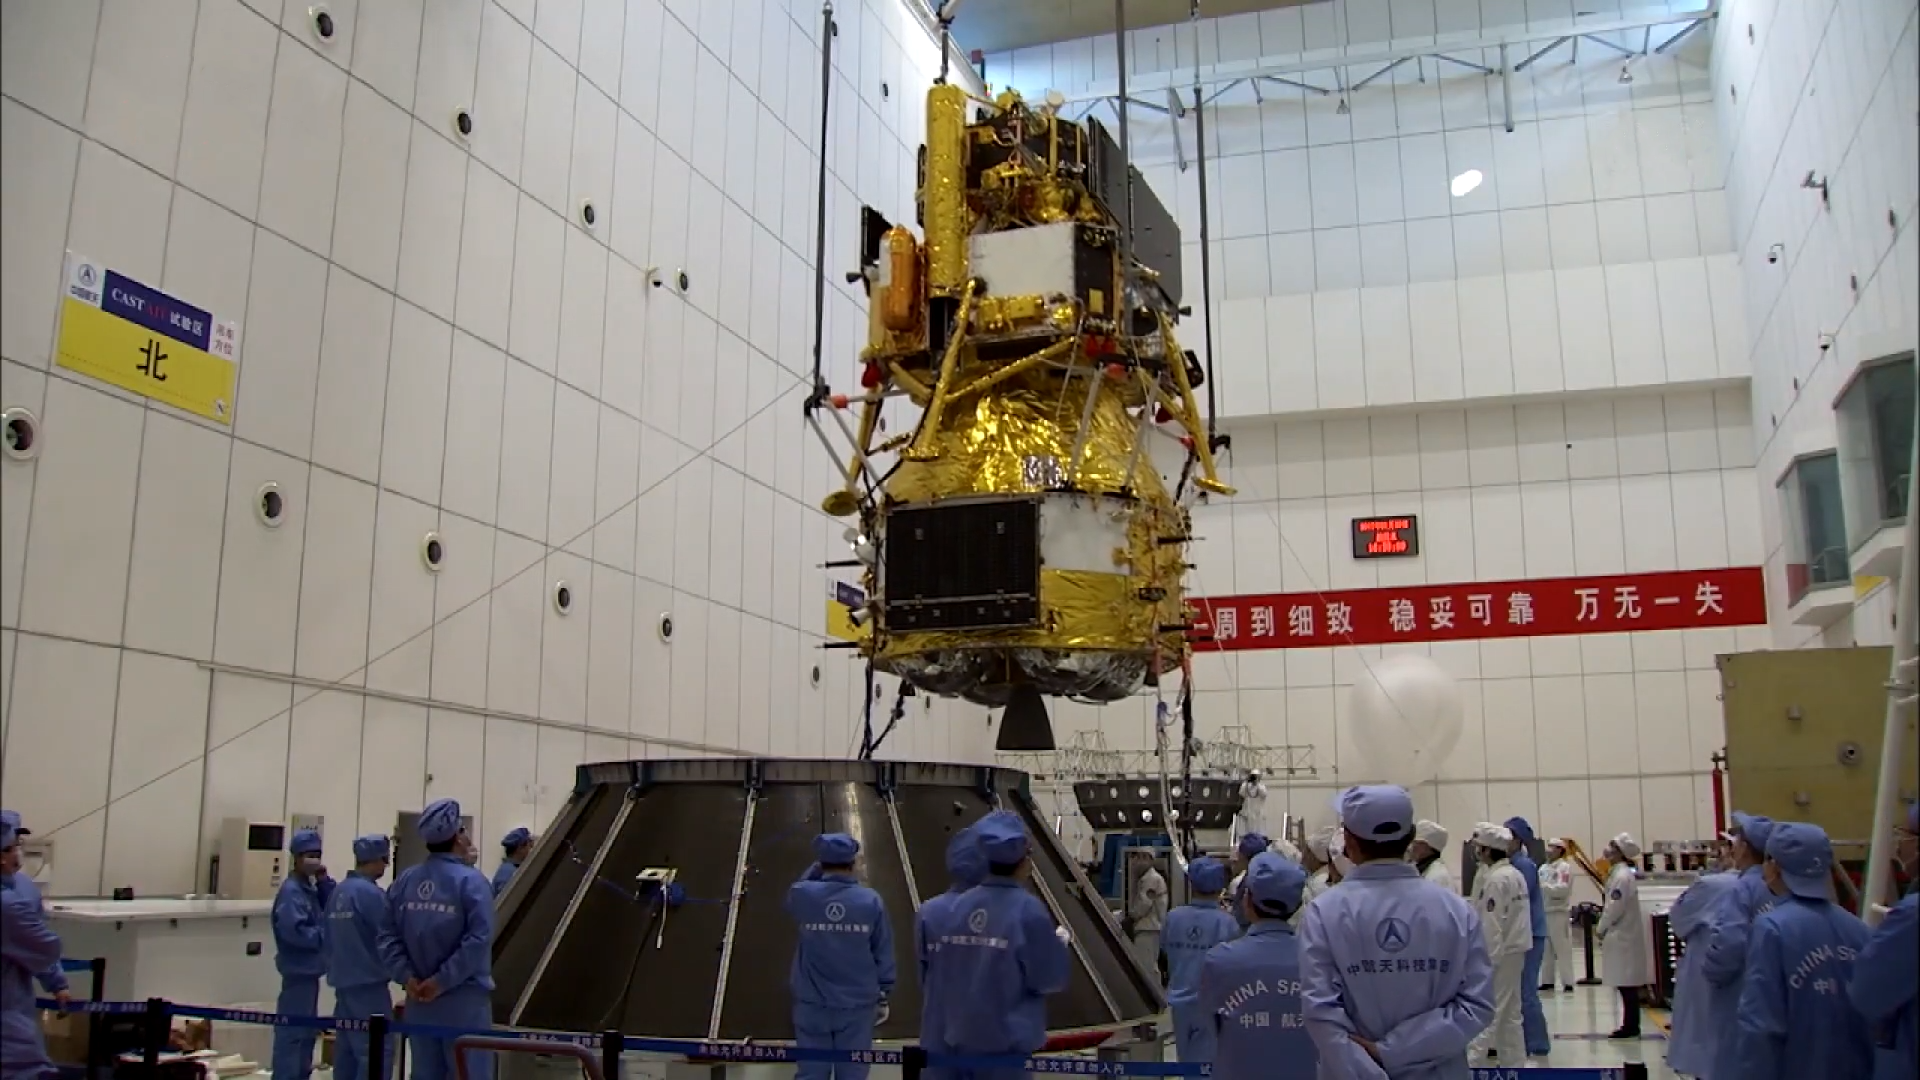 The Chinese spacecraft is composed of a lander and ascender.